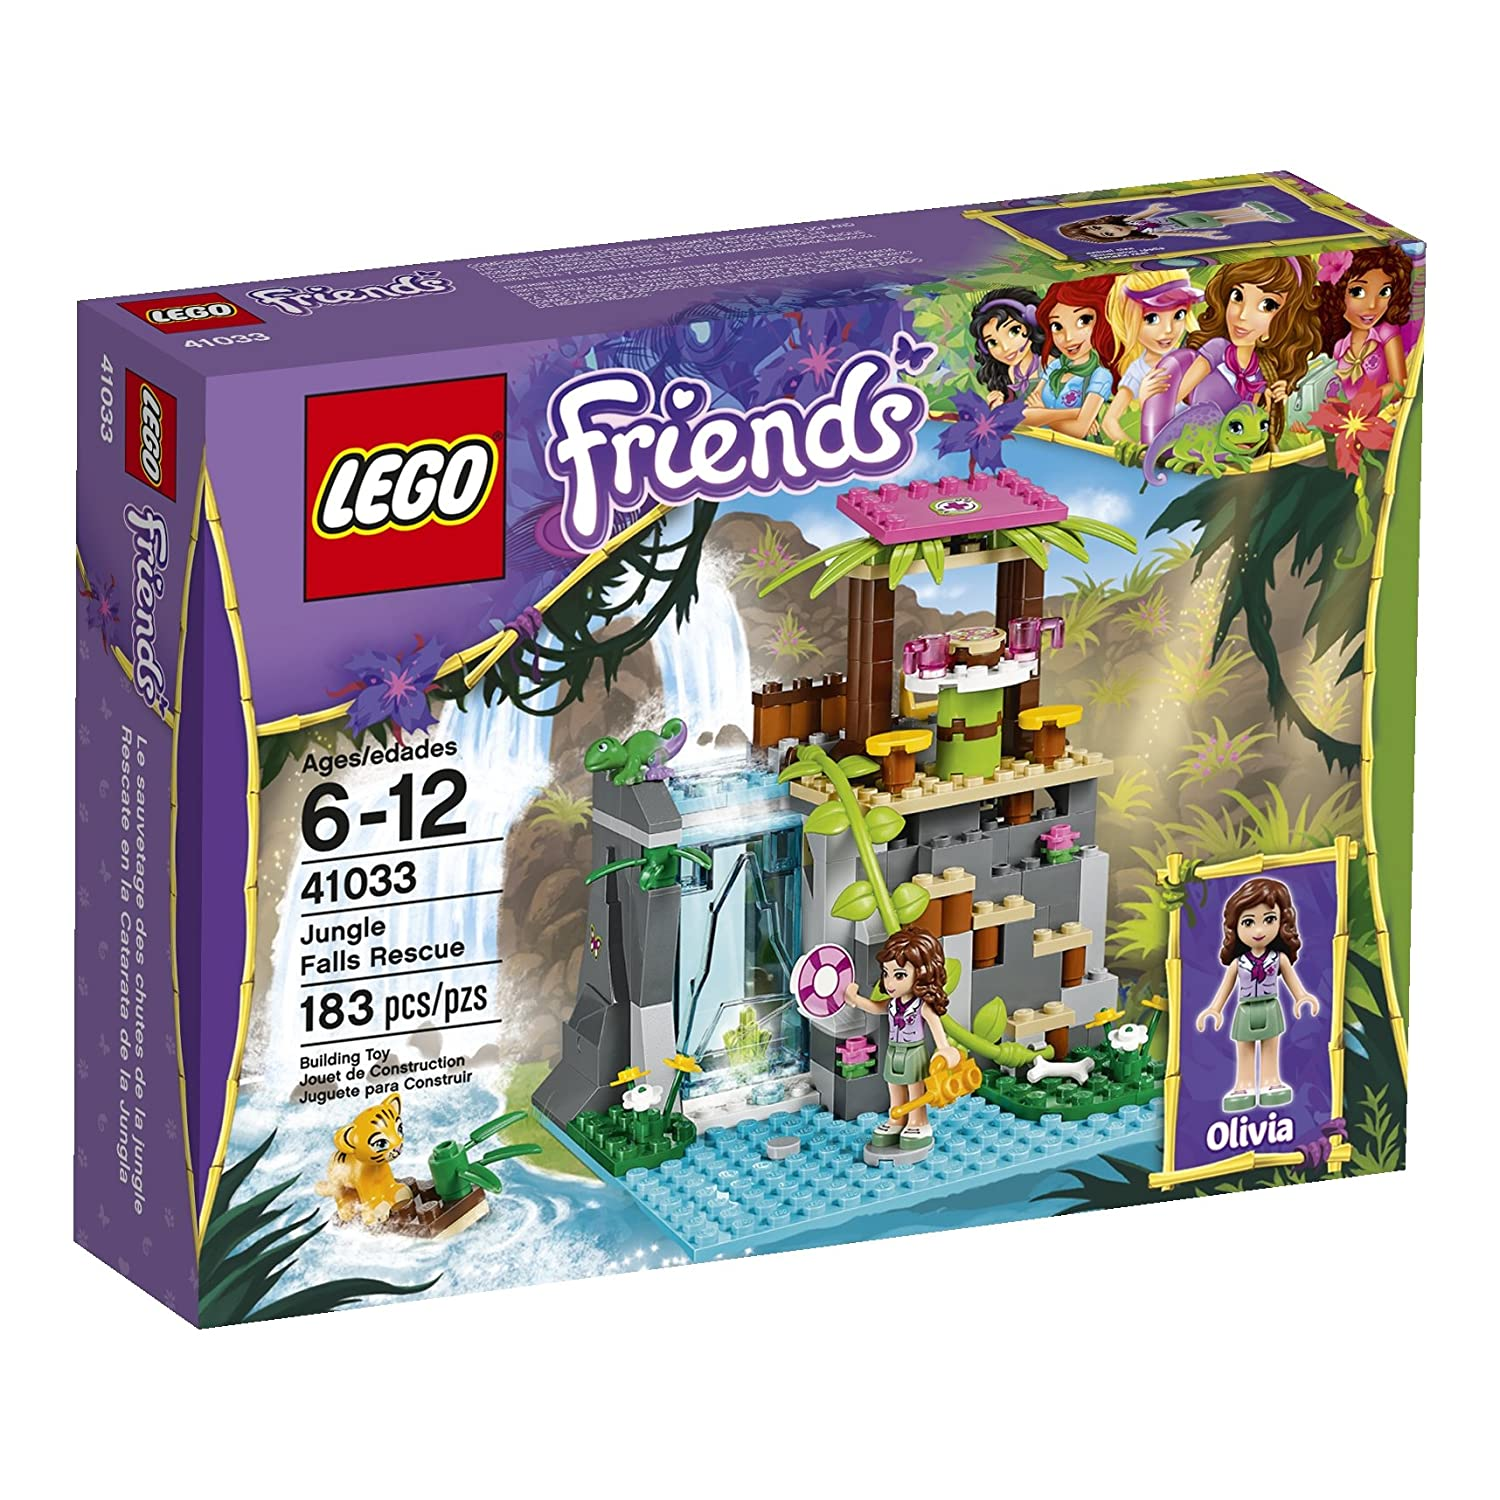 Amazoncom Lego Friends Jungle Falls Rescue 41033 Building Set